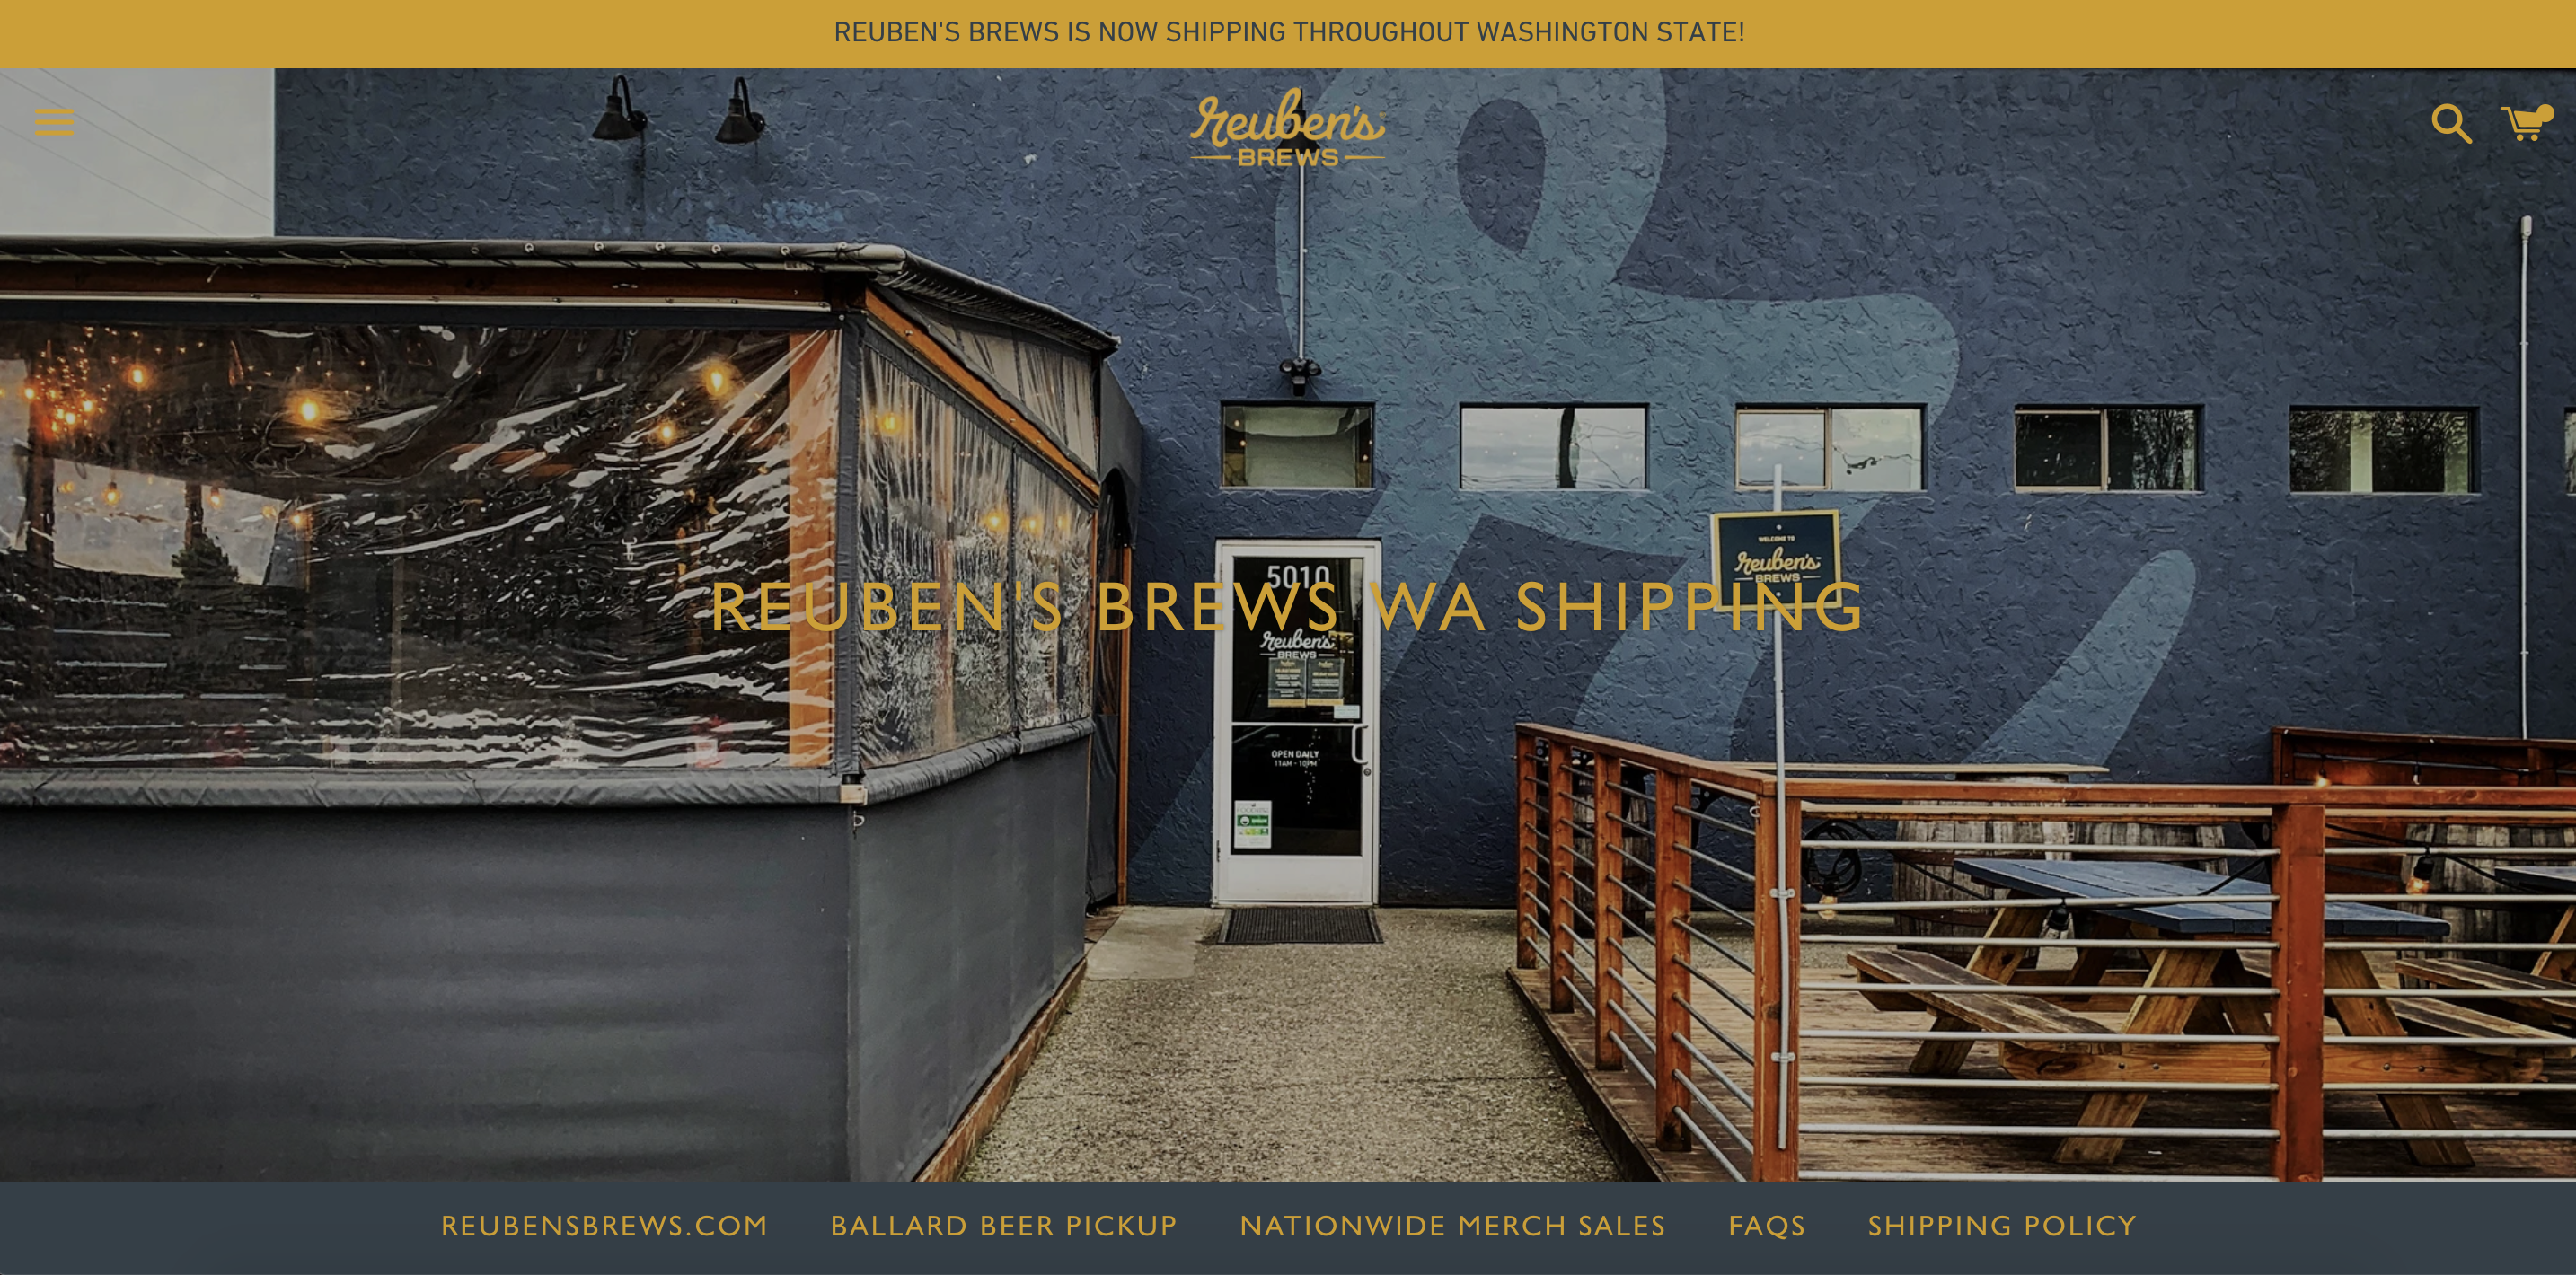 Reuben's Brews Beer Store - Washington State Shipping